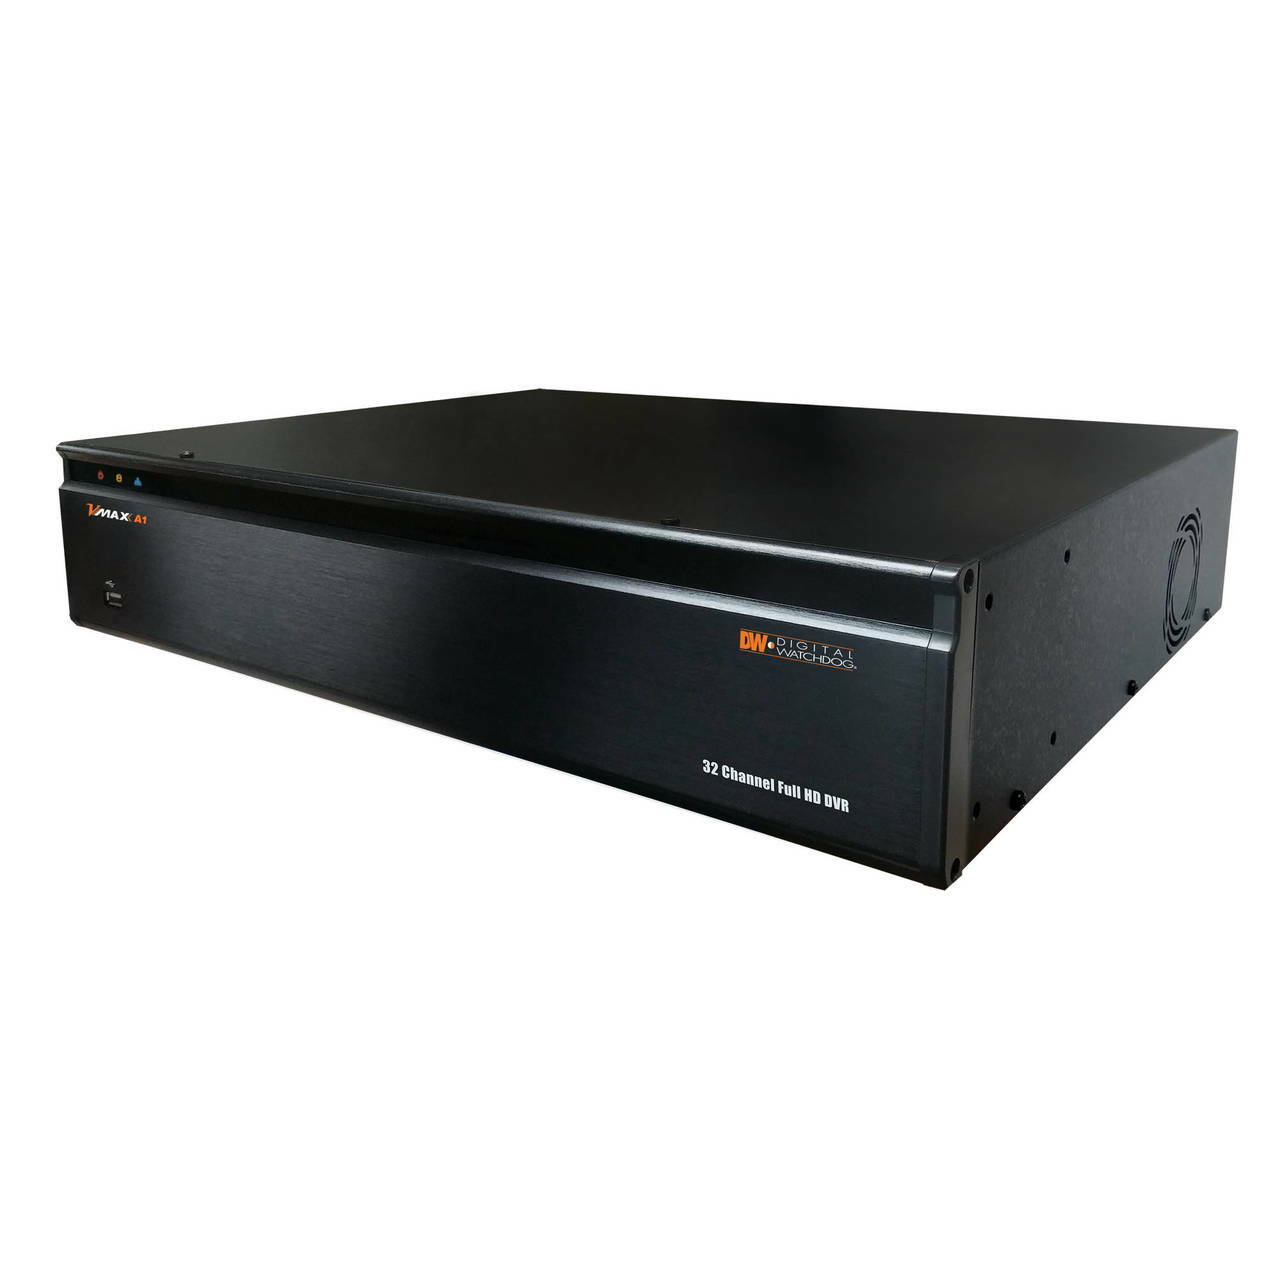 Digital Watchdog DW-VAONE3224T 32 Channel Digital Video Recorder - 24TB HDD  included